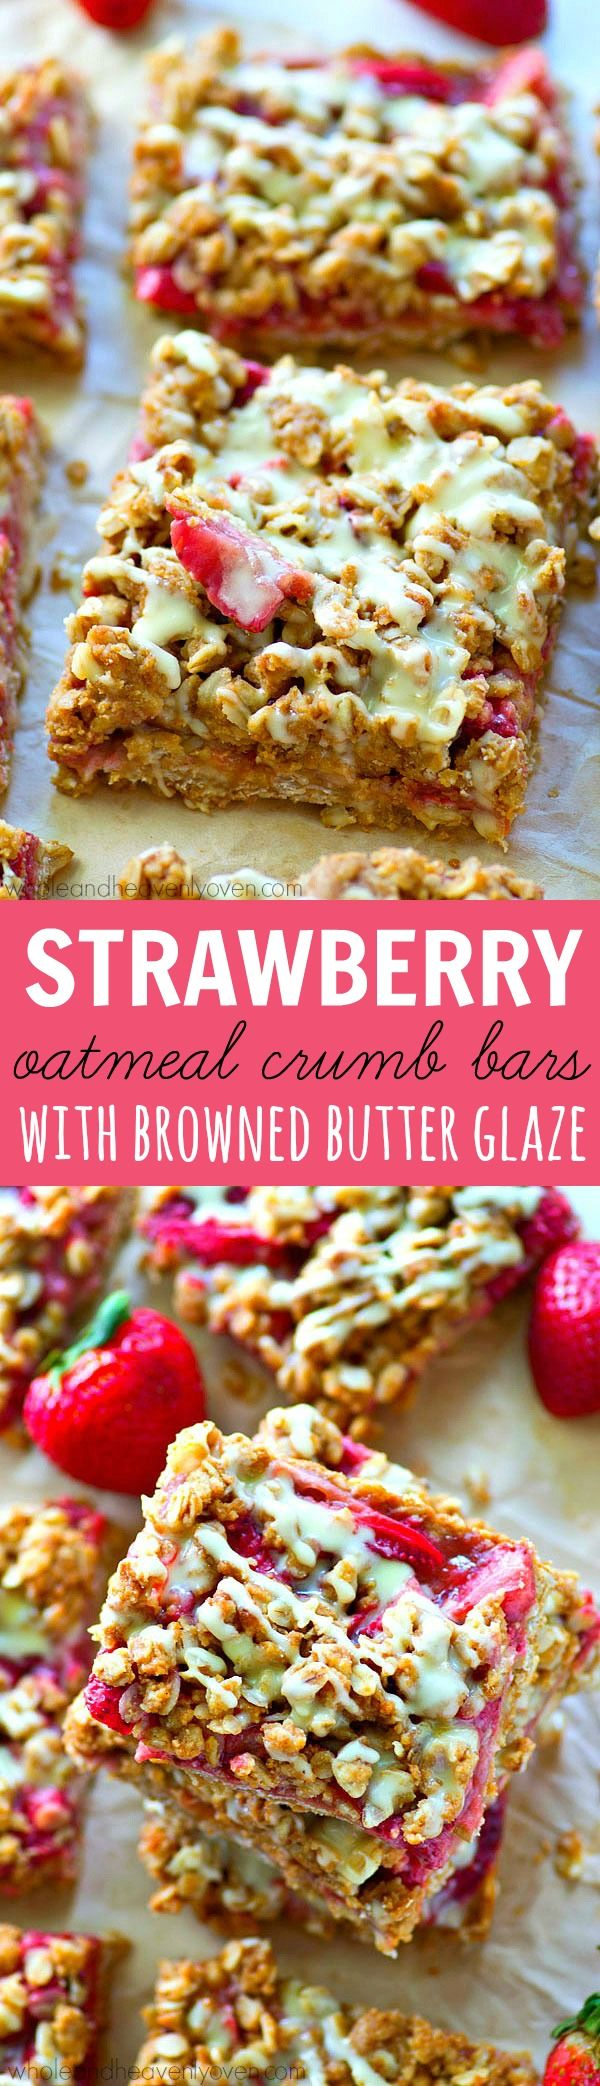 Strawberry Oatmeal Crumb Bars with Browned Butter Glaze | Recipe ...